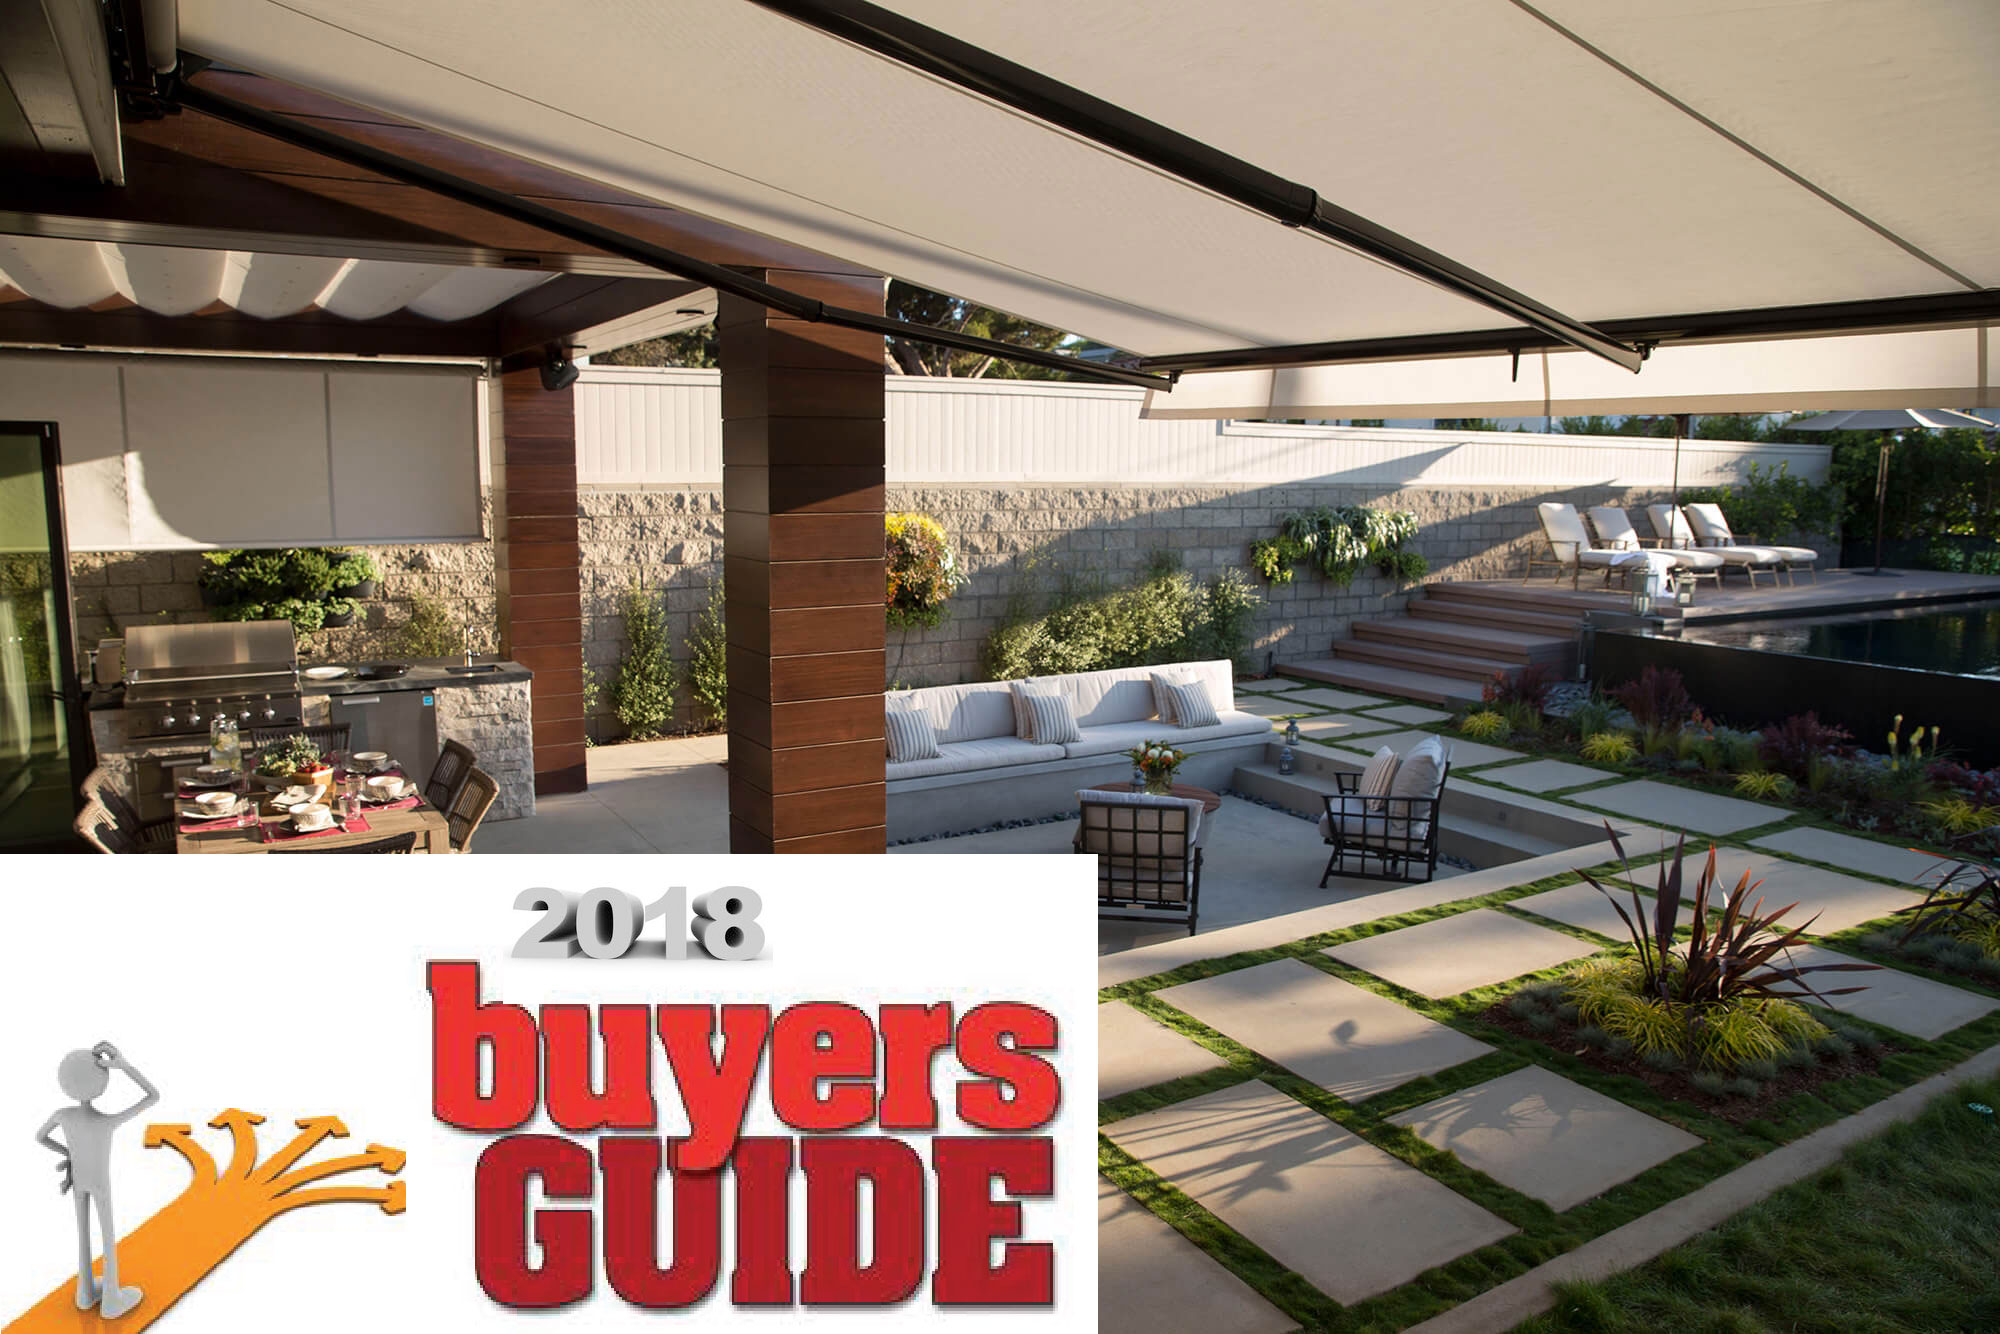 Retractable Awning Buyers Guide For 2018 The Awning Warehouse Ny Awnings Nj Awnings